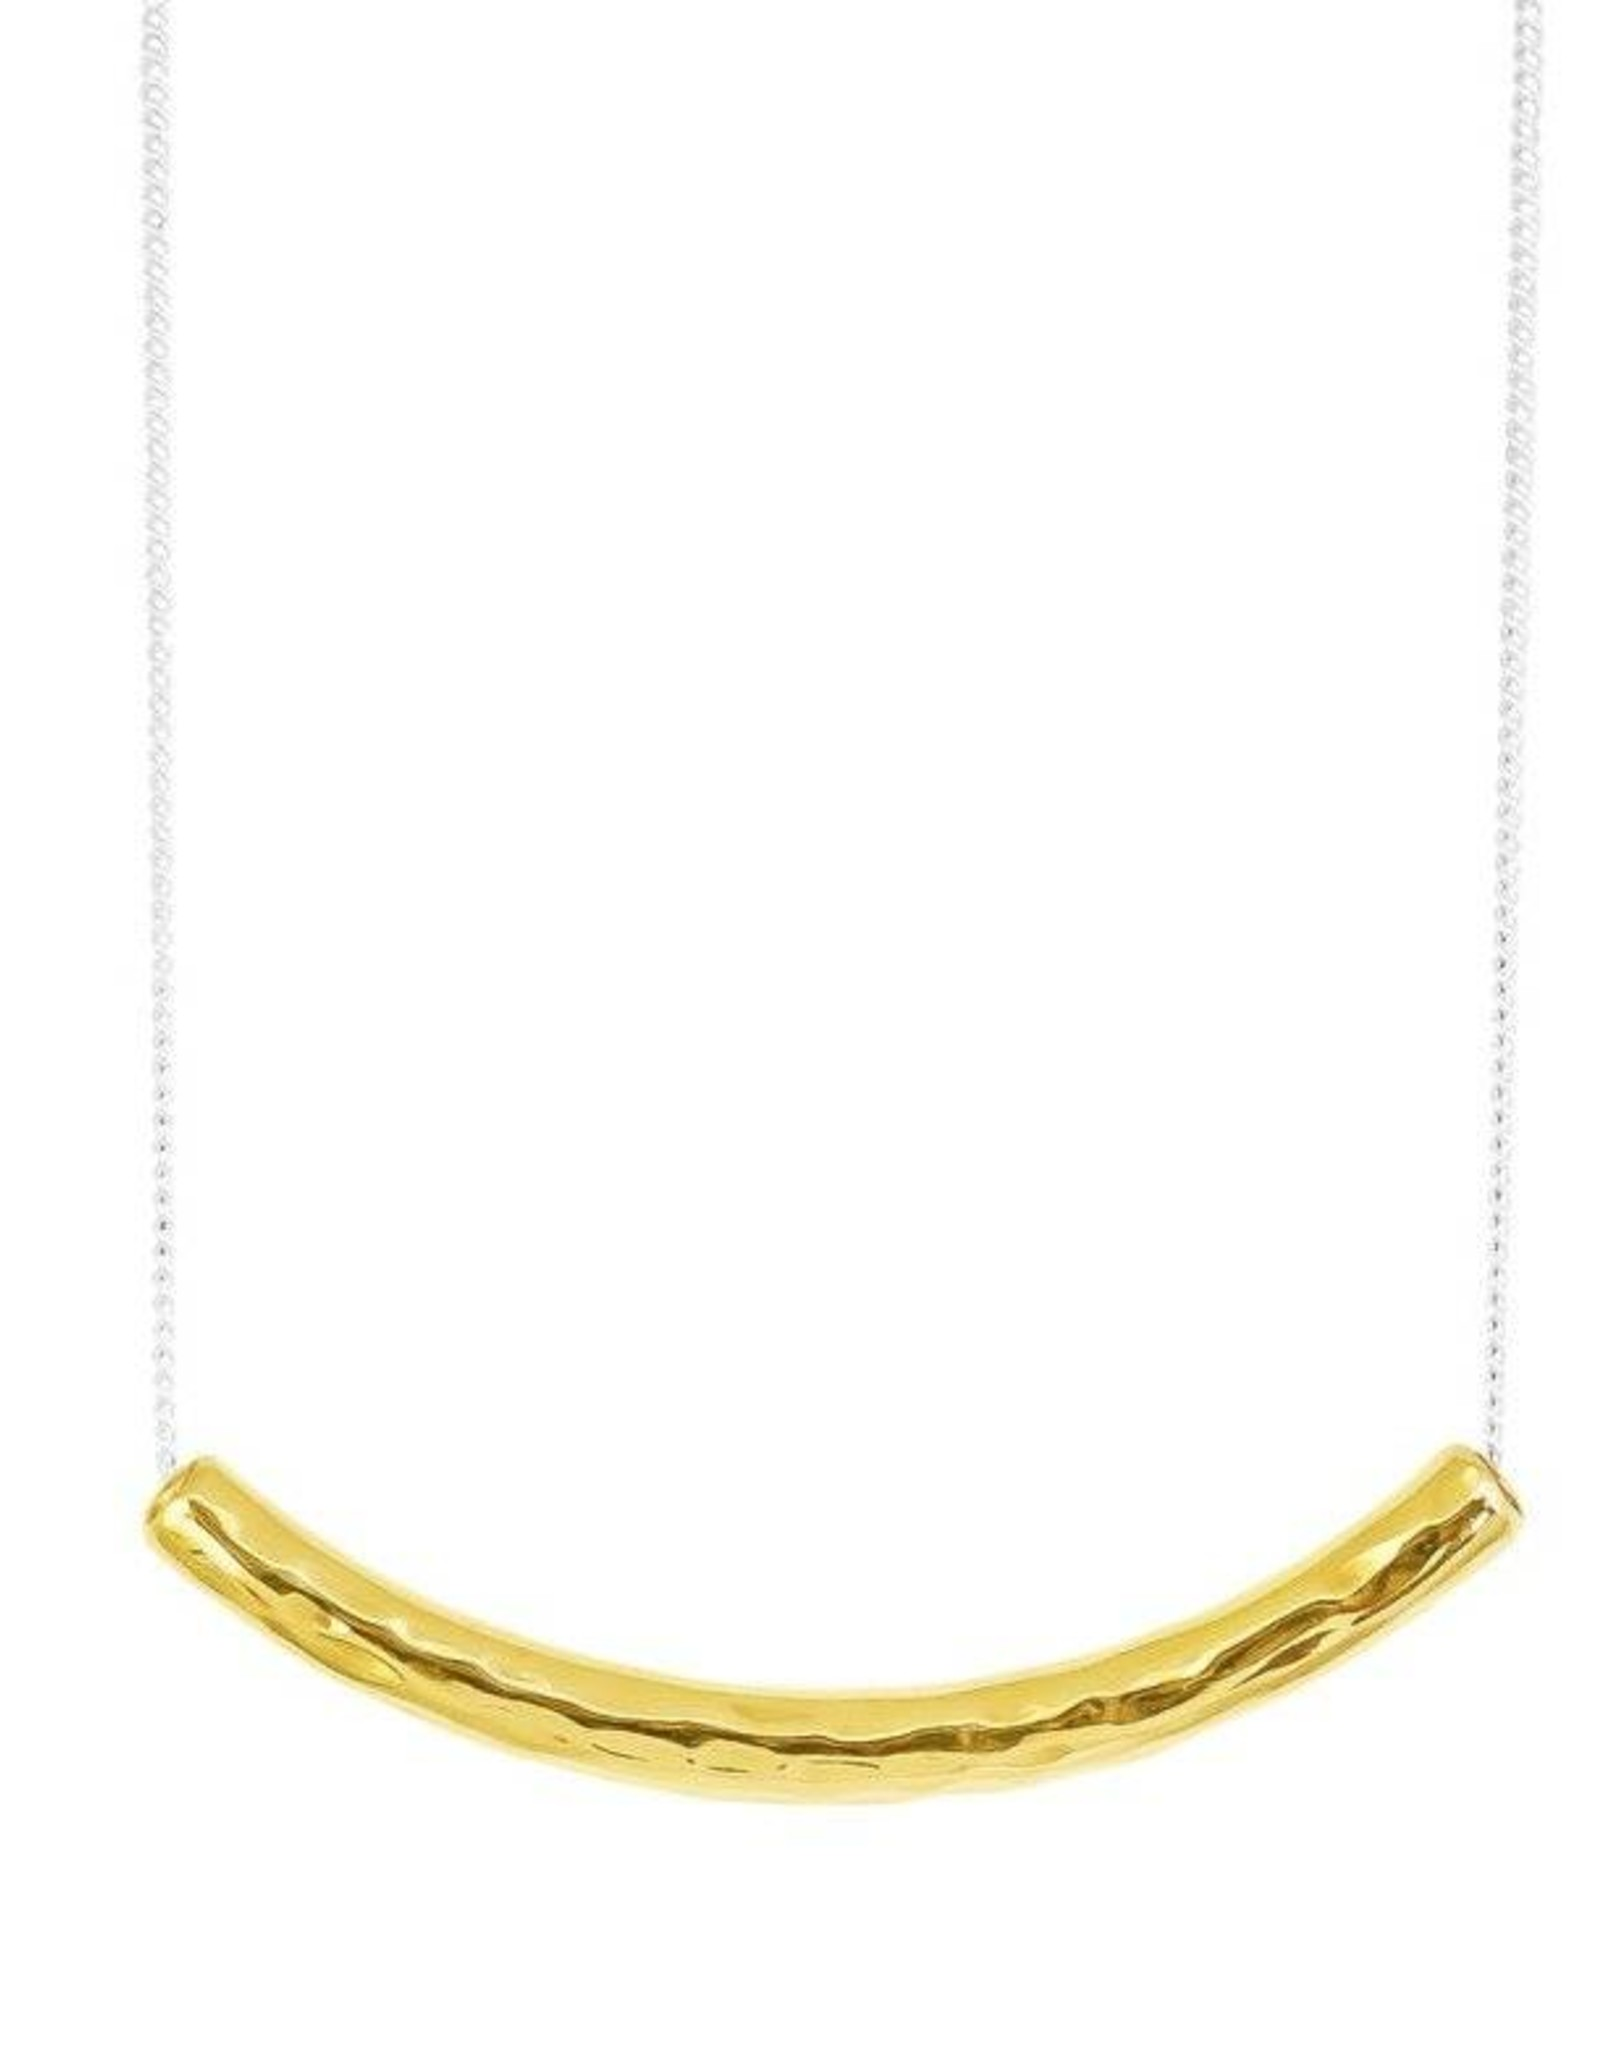 HUSK MEDIUM HAMMERED BAR NECKLACE - SHORT / GOLD BAR